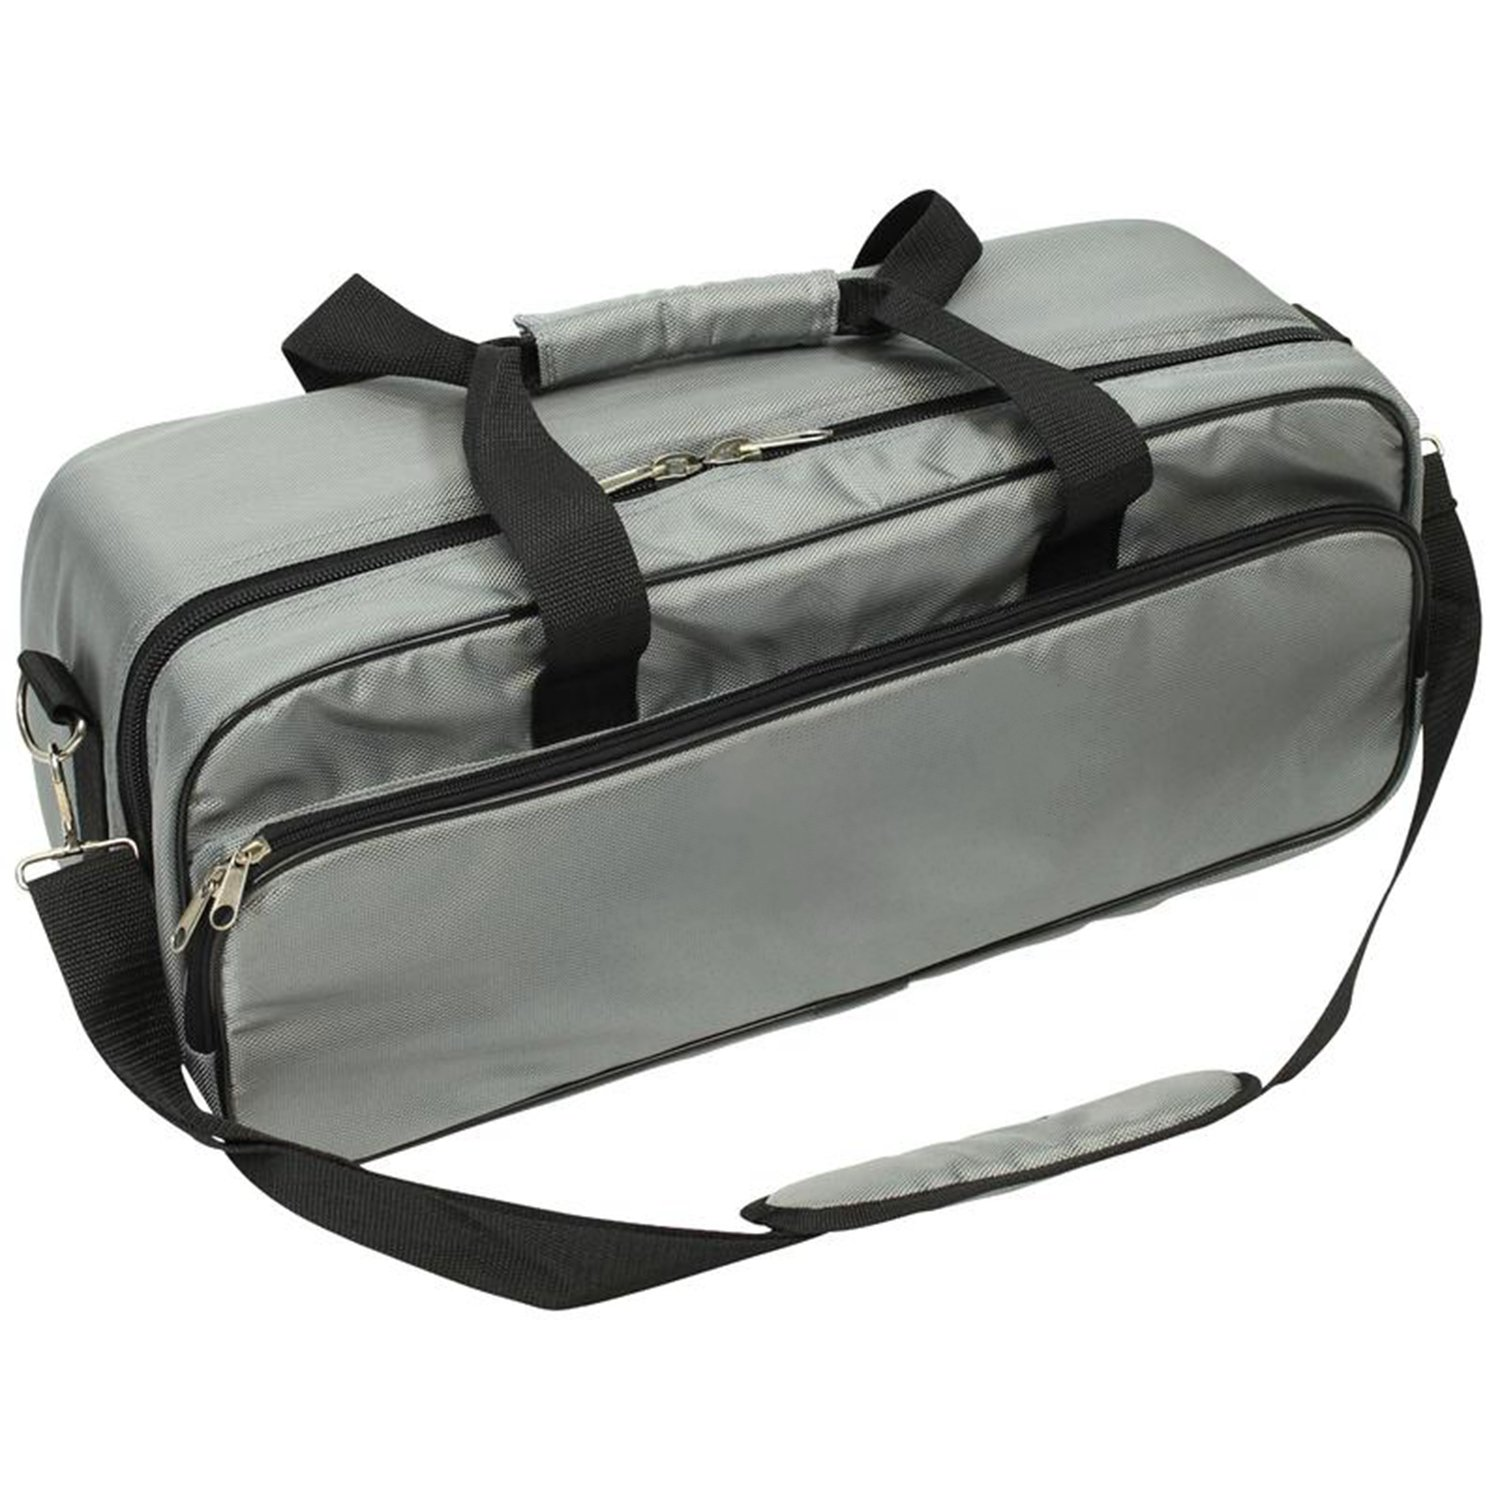 Astromania Transport Bag for 1.25'' Eyepiece and 2'' Eyepiece - Eyepiece Carry Case by Astromania